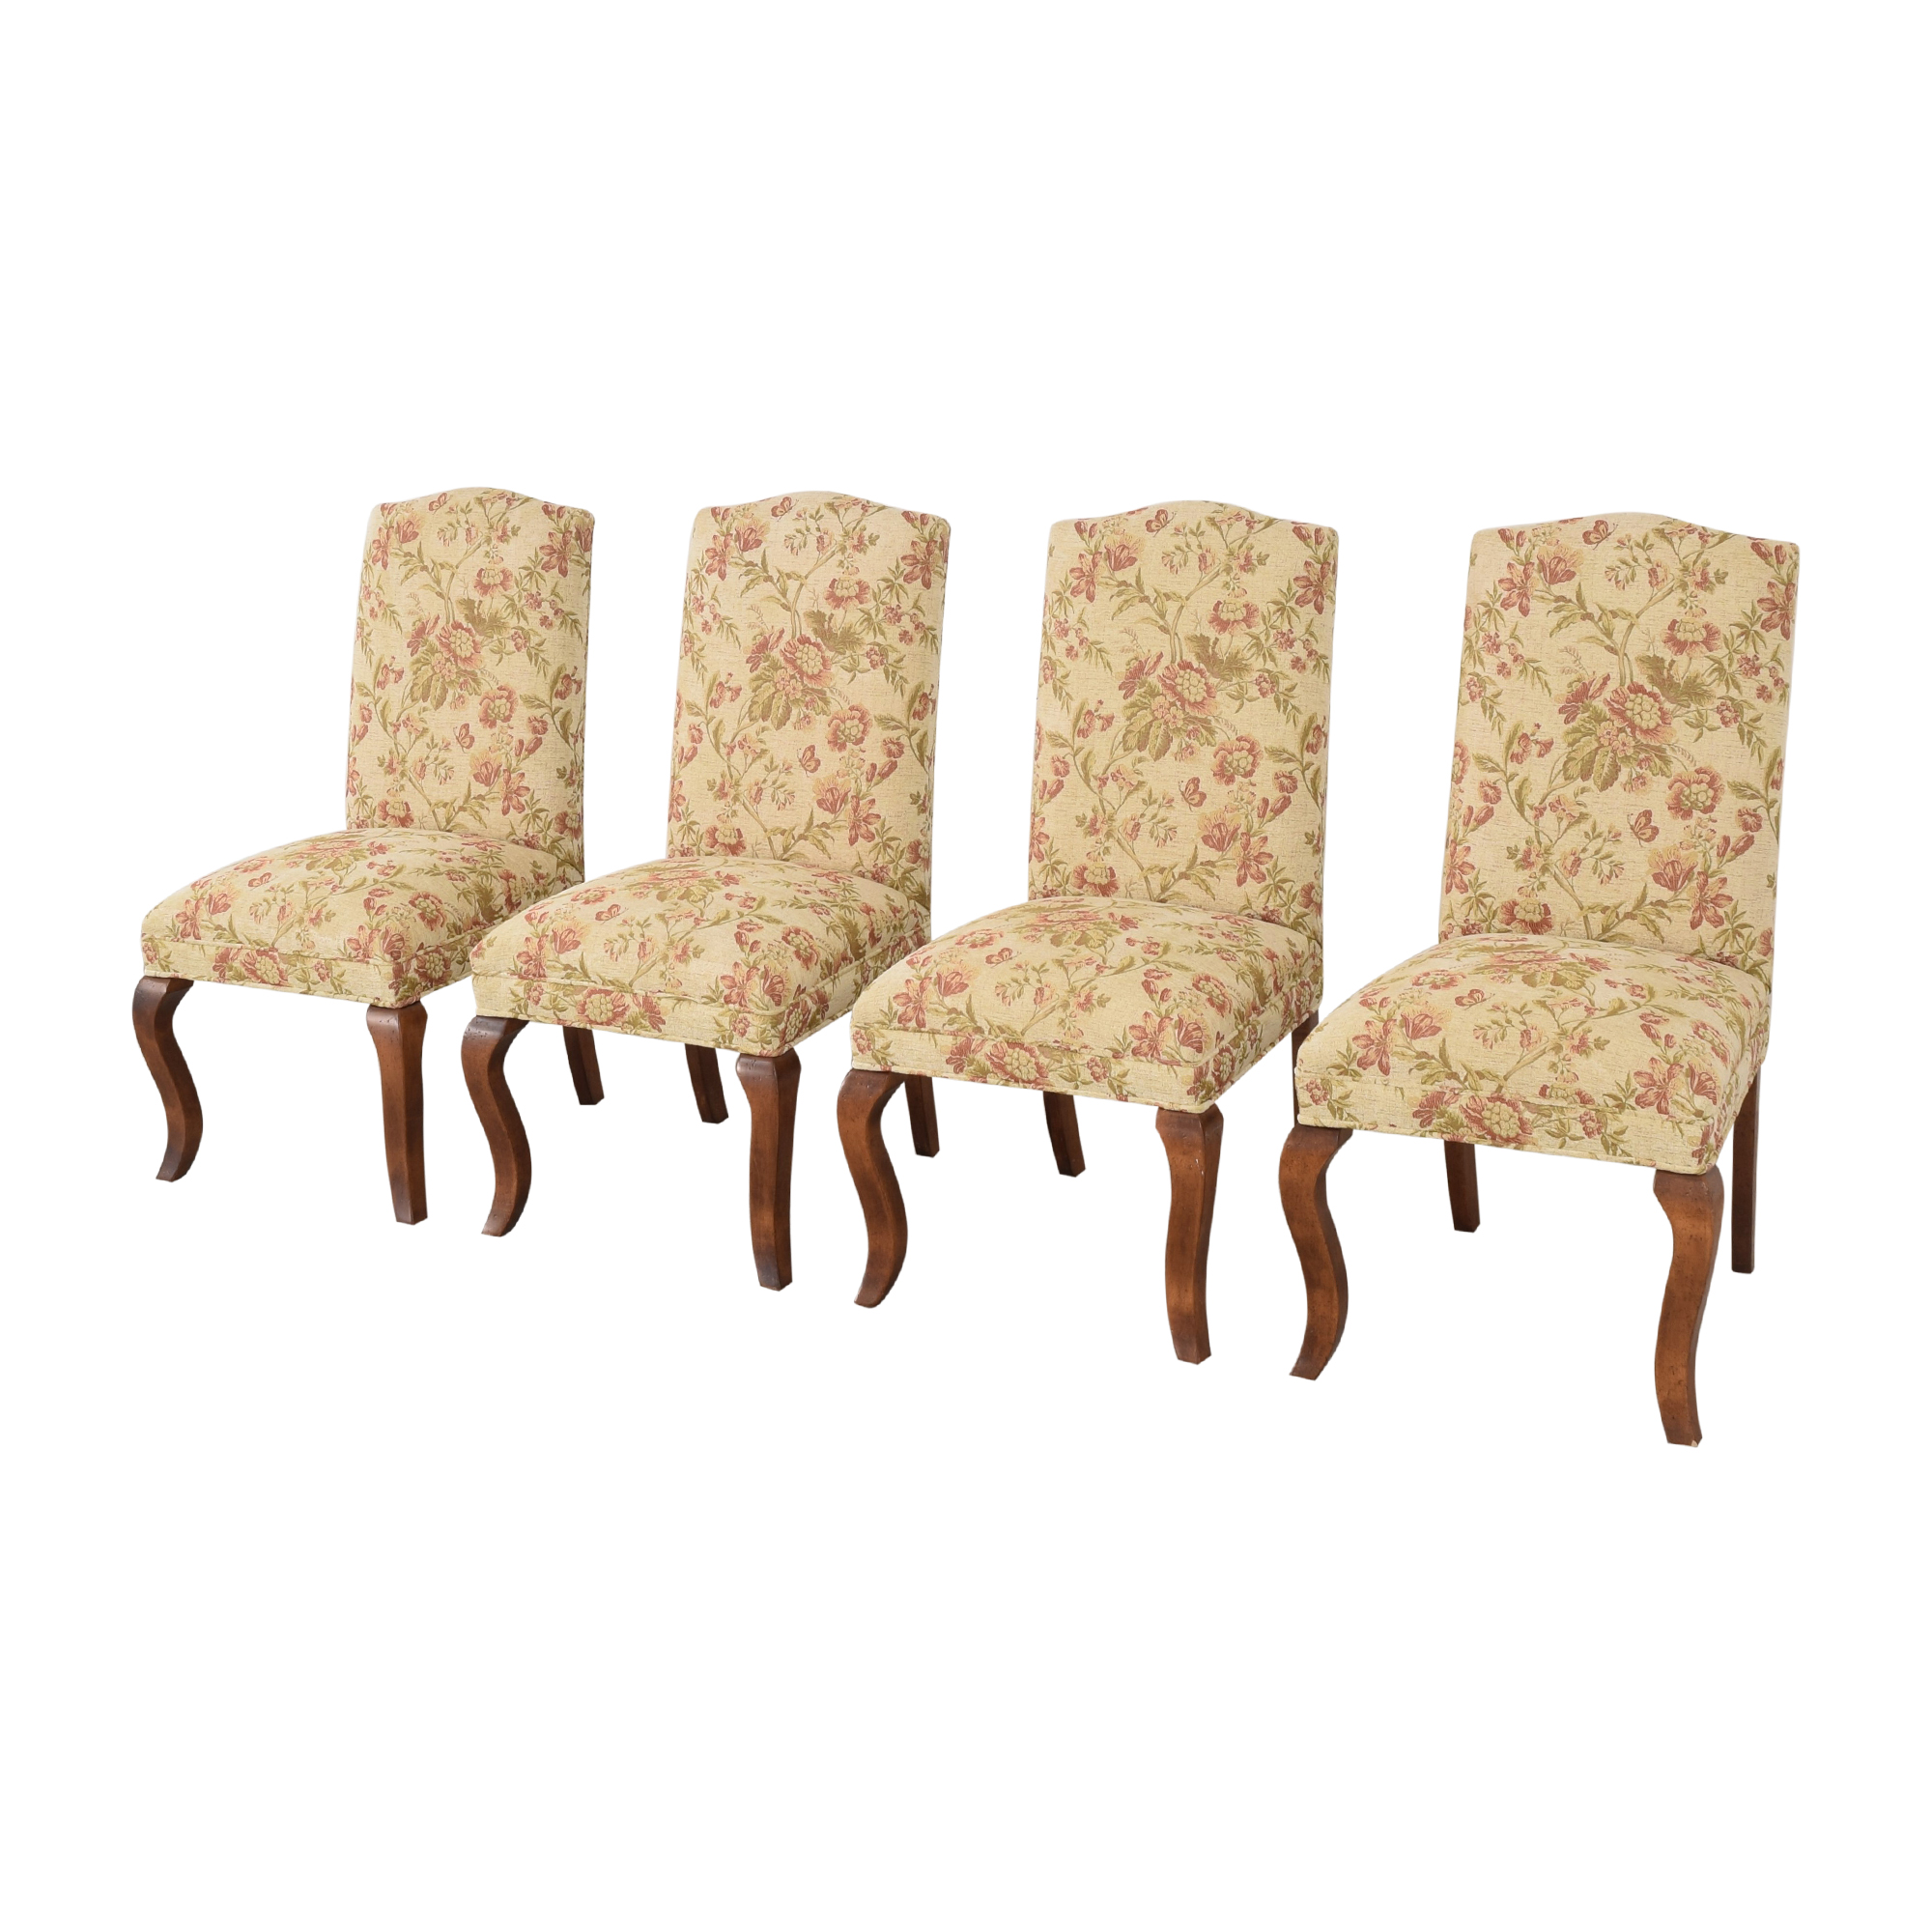 Queen Anne Upholstered Dining Chairs ct